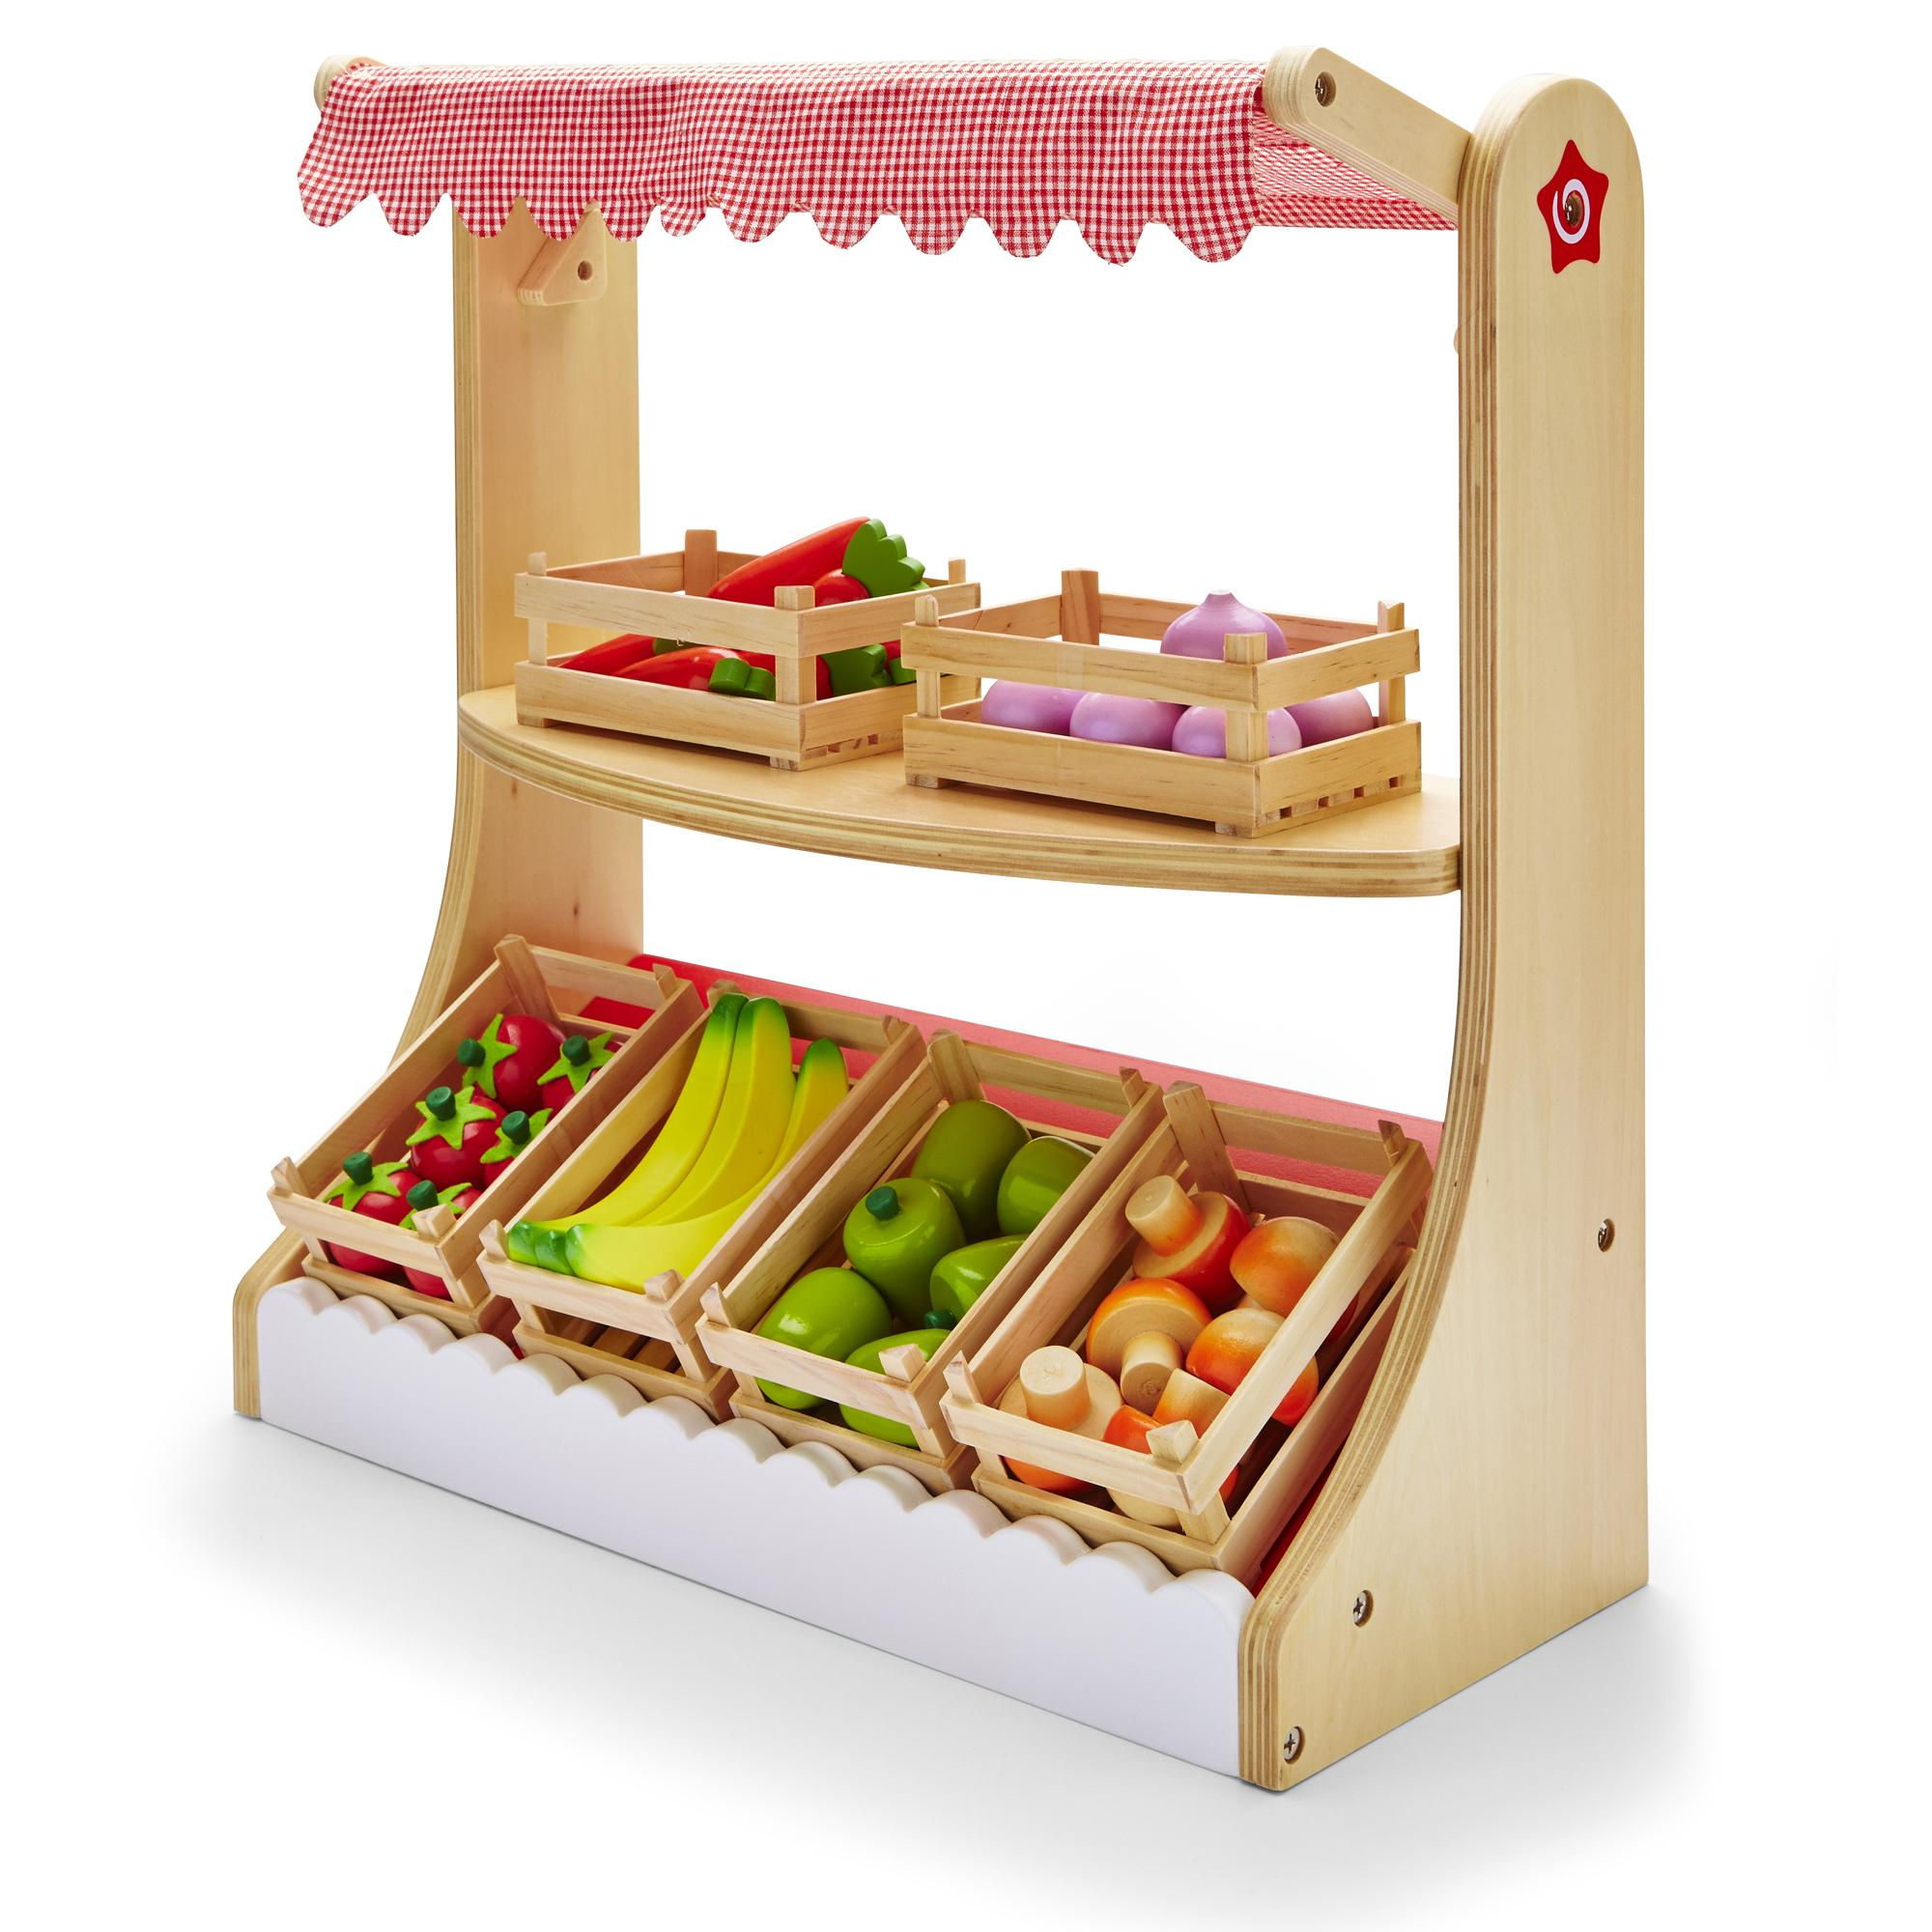 Wooden Market Stall & Wood Fruit & Vegatables Childrens Kids Shop